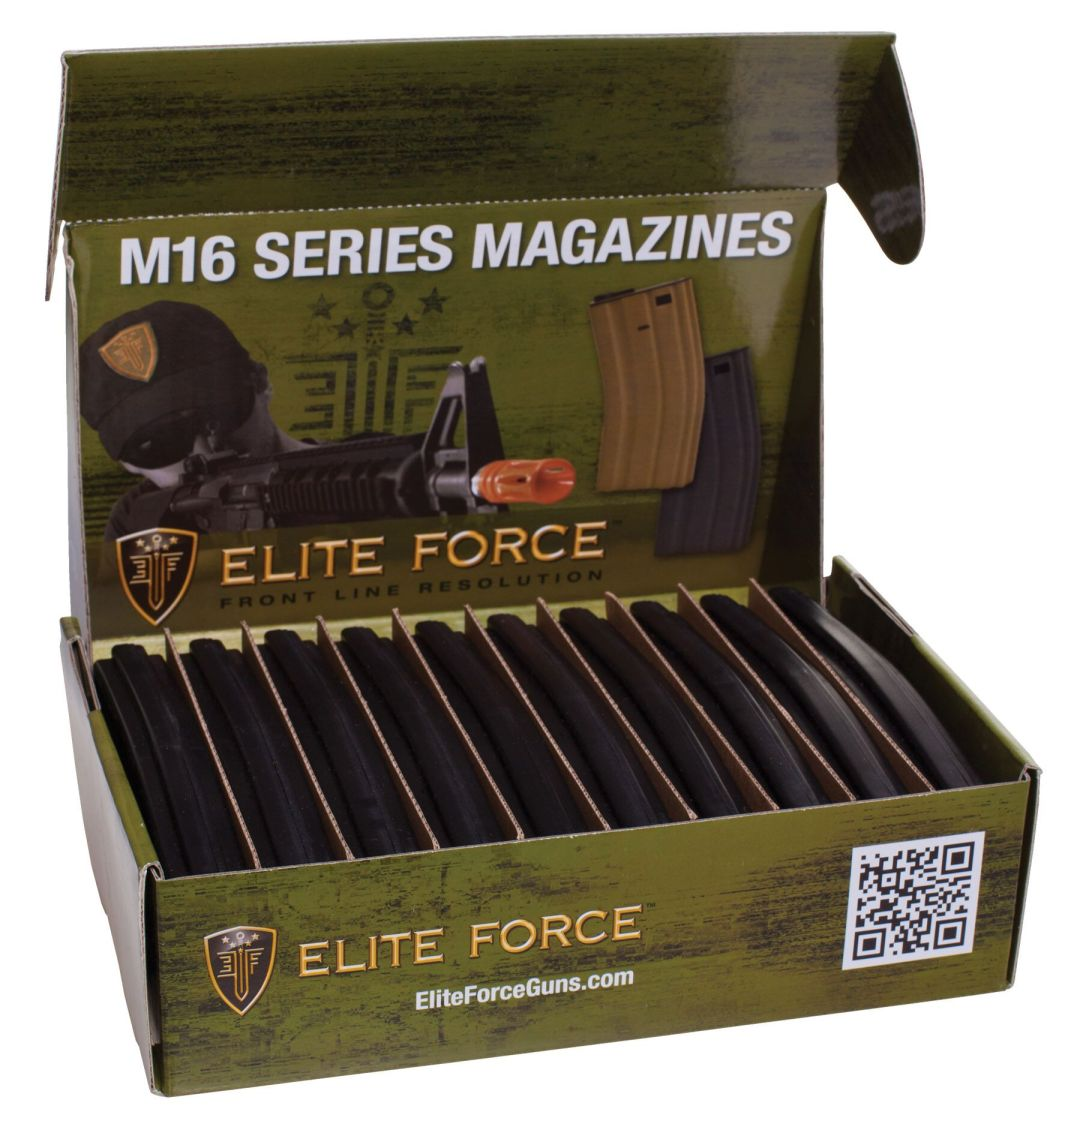 Elite Force 140rd Mid-Cap Magazine for M4 M16 AEG